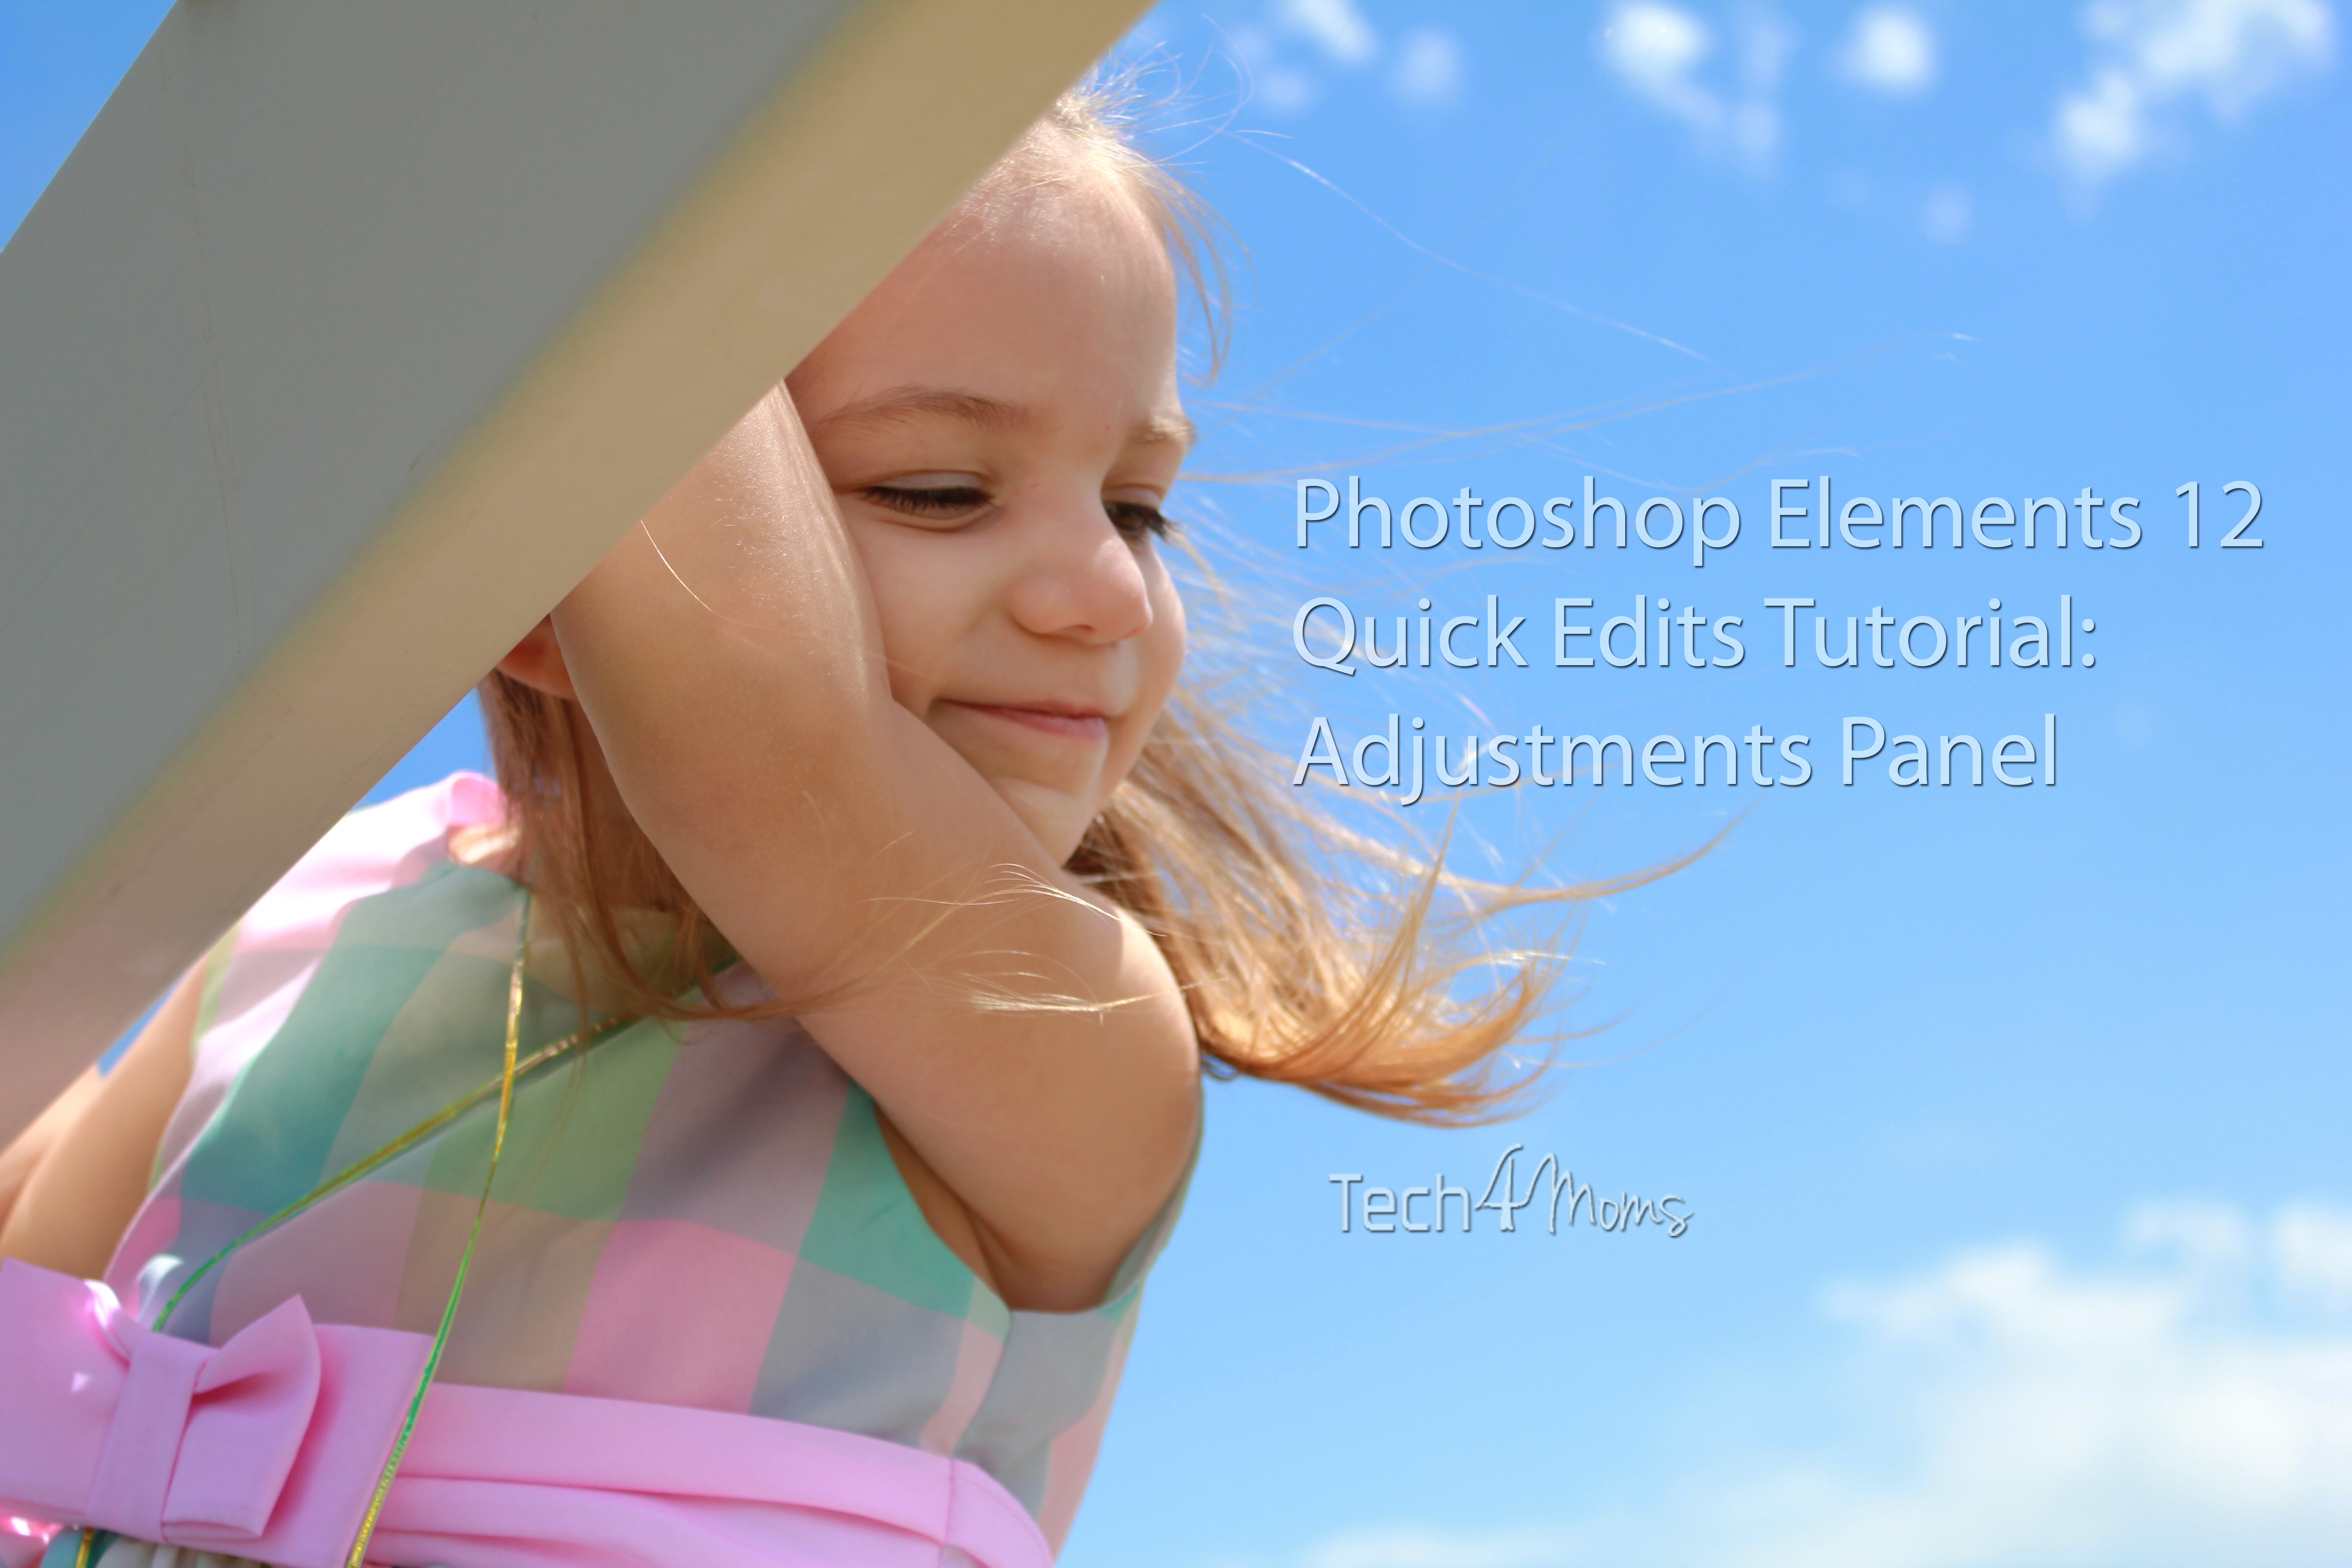 How to fix color cast in photoshop elements - How To Fine Tune Your Photos For Big Results With Photoshop Elements 12 Family Tech Zone